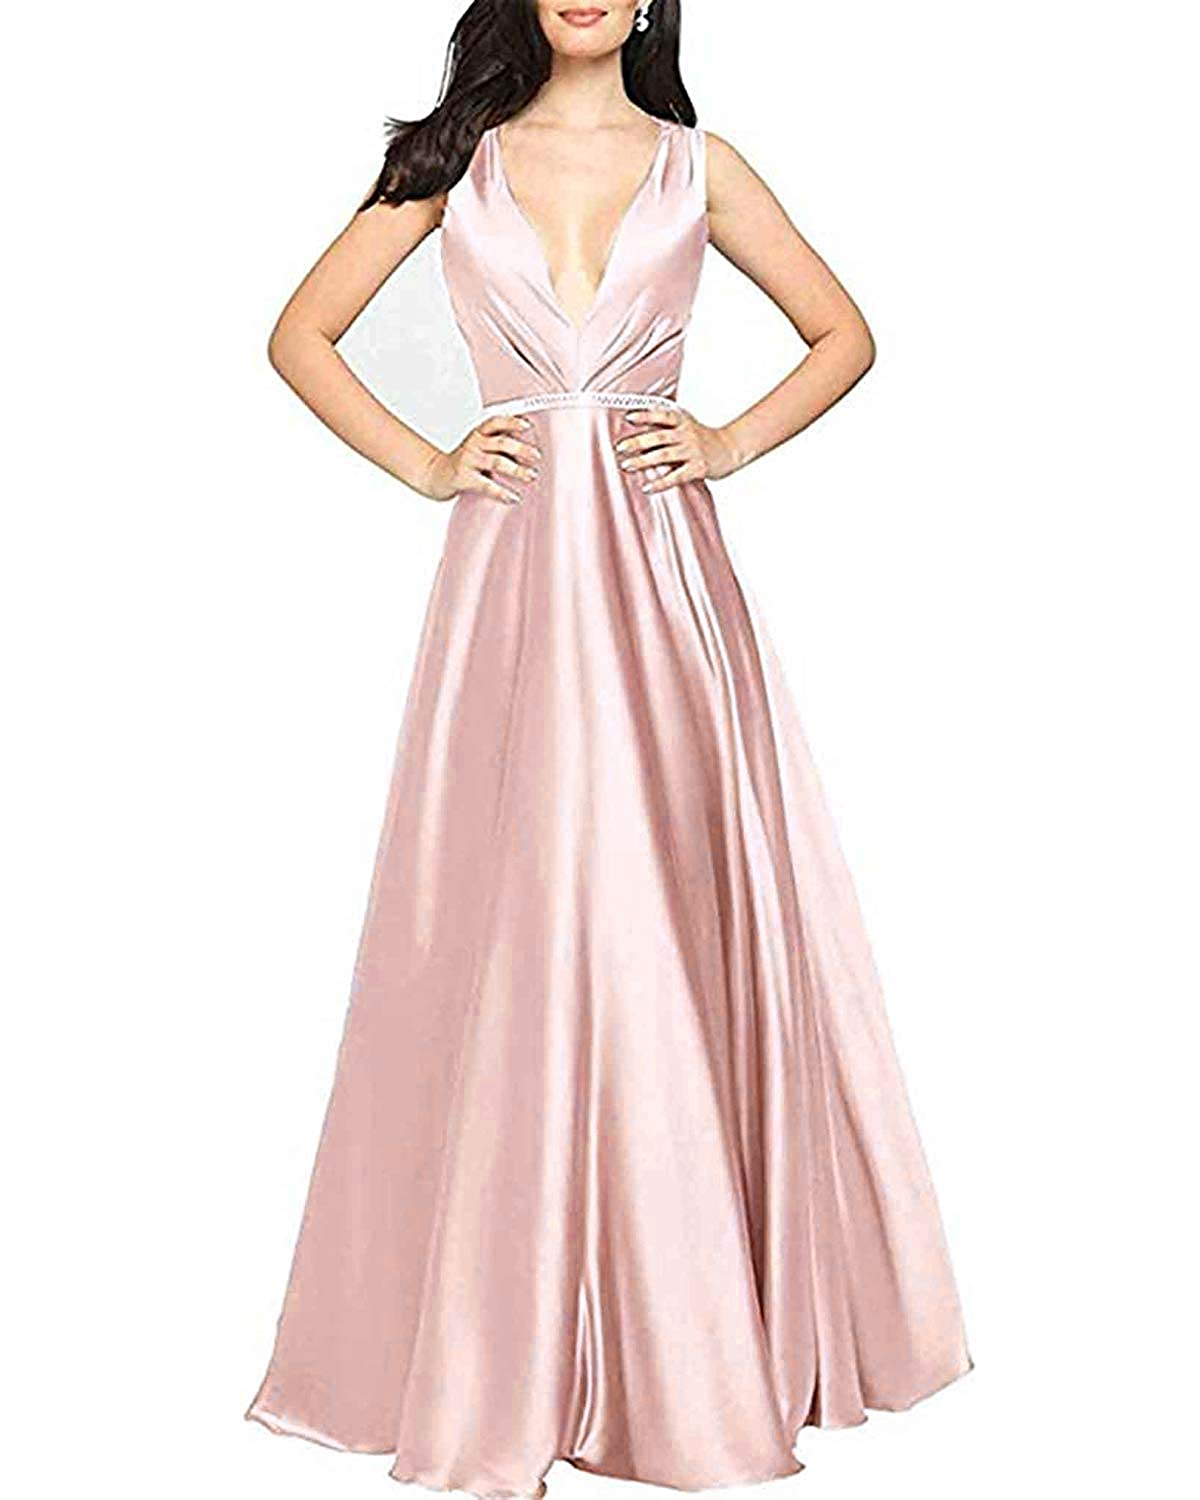 Pastel Pink WHLWHL ALine VNeck Long Party Prom Gown for Women Formal Evening Dress with Pockets